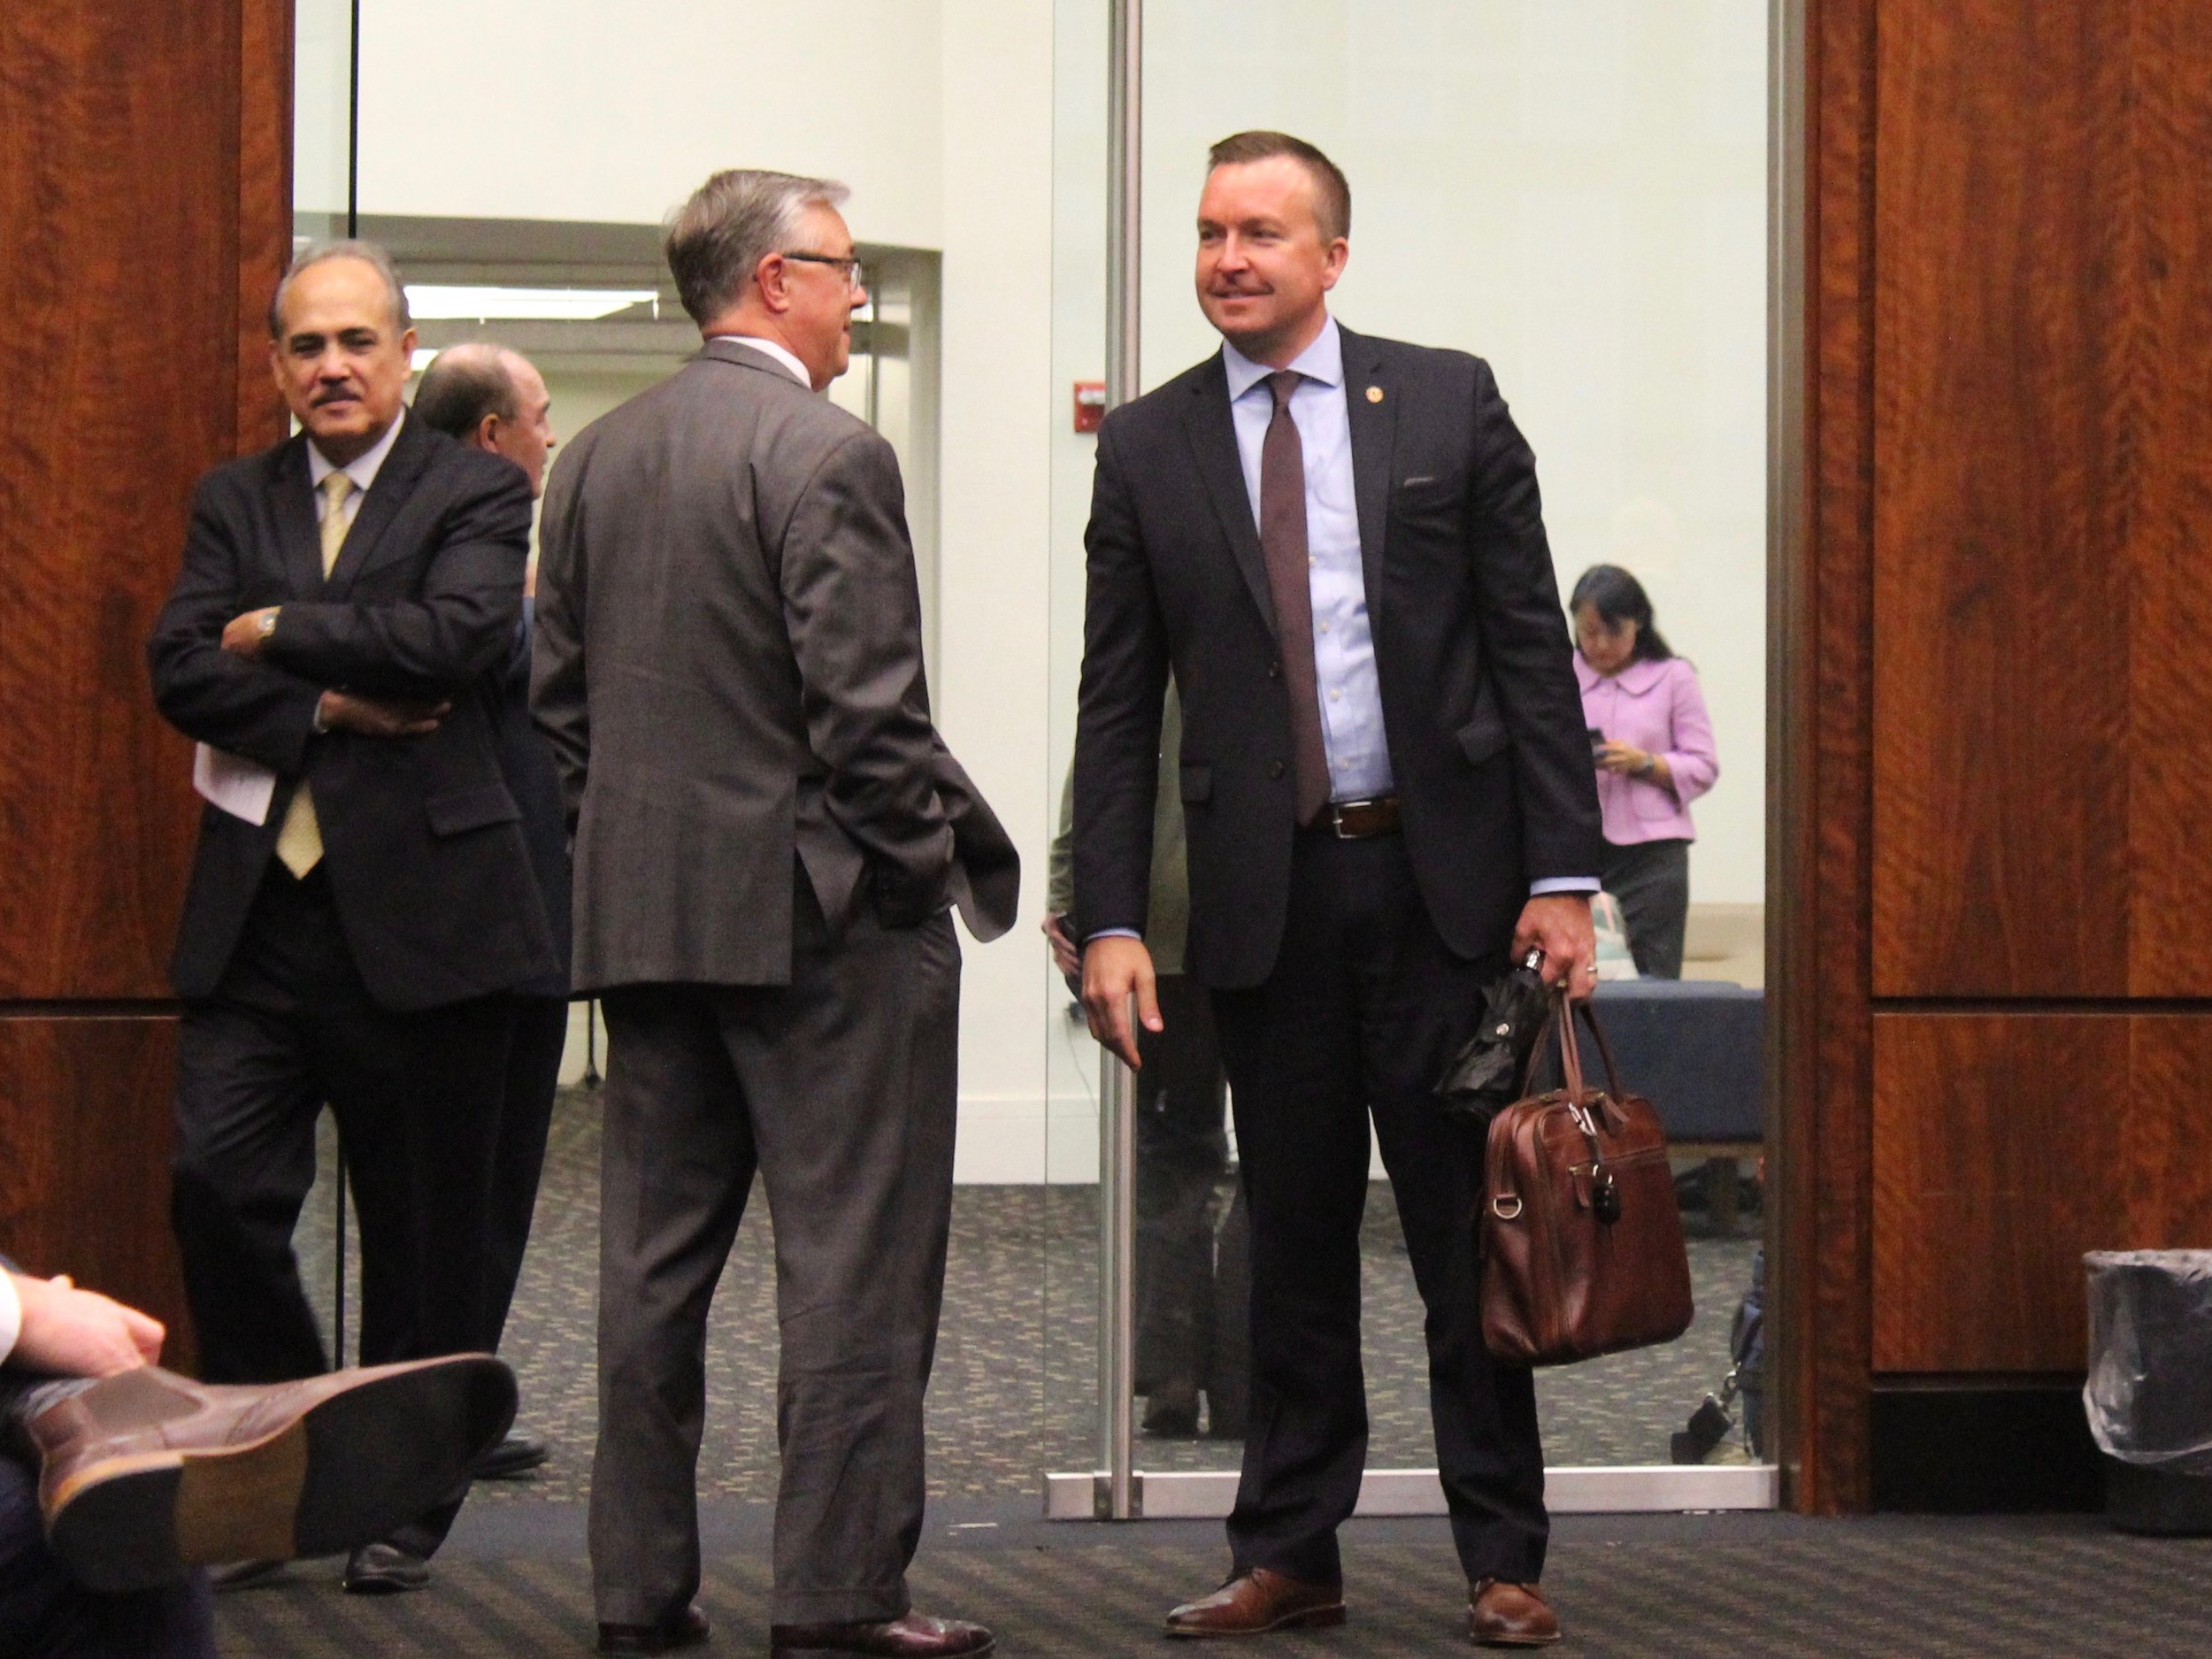 State Sen. Andy Manar attends a hearing in Chicago last month. (One Illinois/Ted Cox)